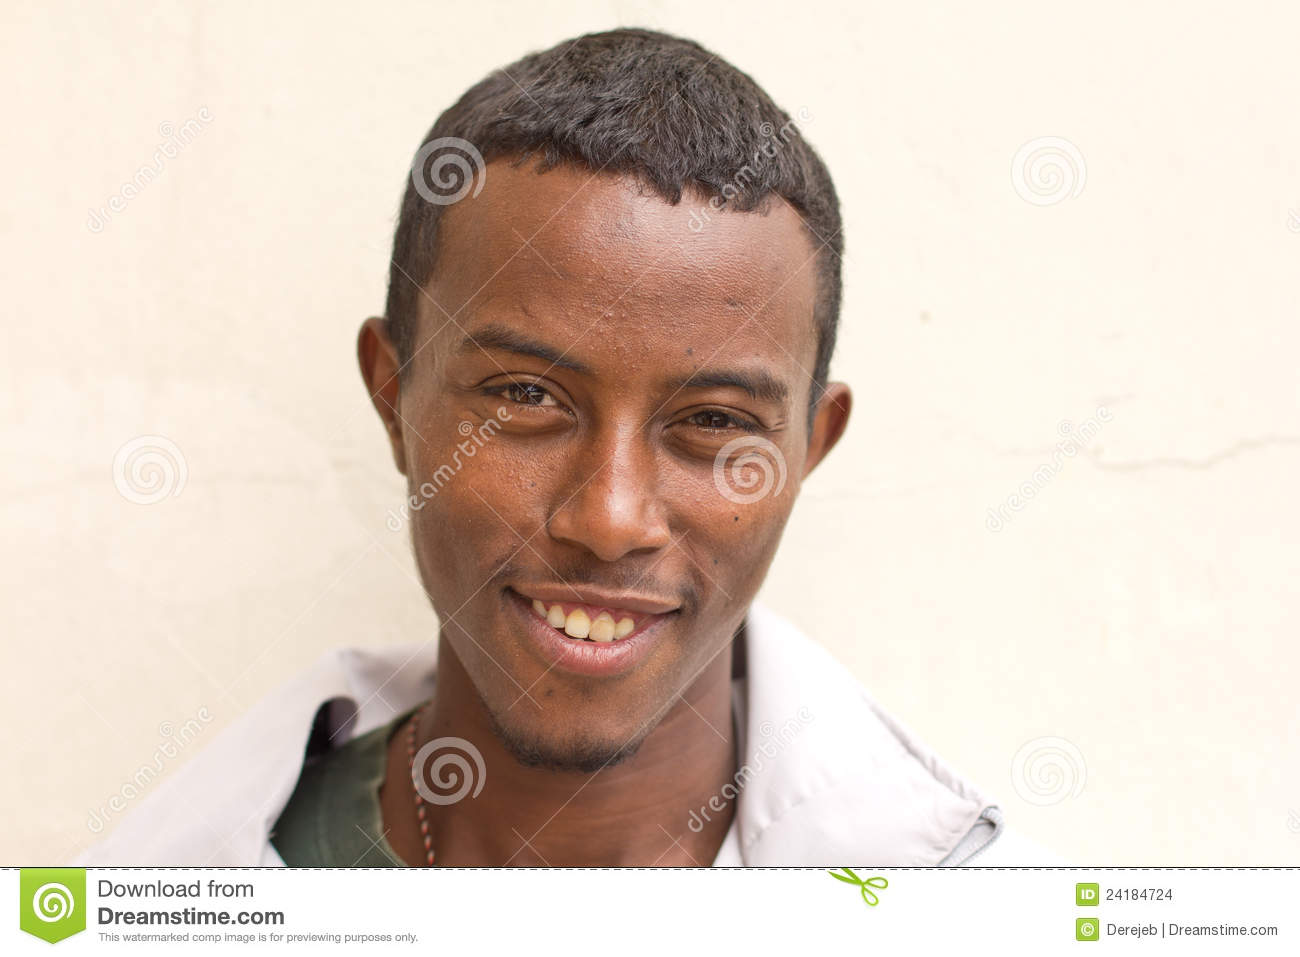 dating ethiopian man Just a simple easy going man looking for lovewidower with three daughters(19, 17, 10) like travelling, enjoy cruising the most professional singer/musician i enjoy all kinds of music professional singer/musician i enjoy all kinds of music.